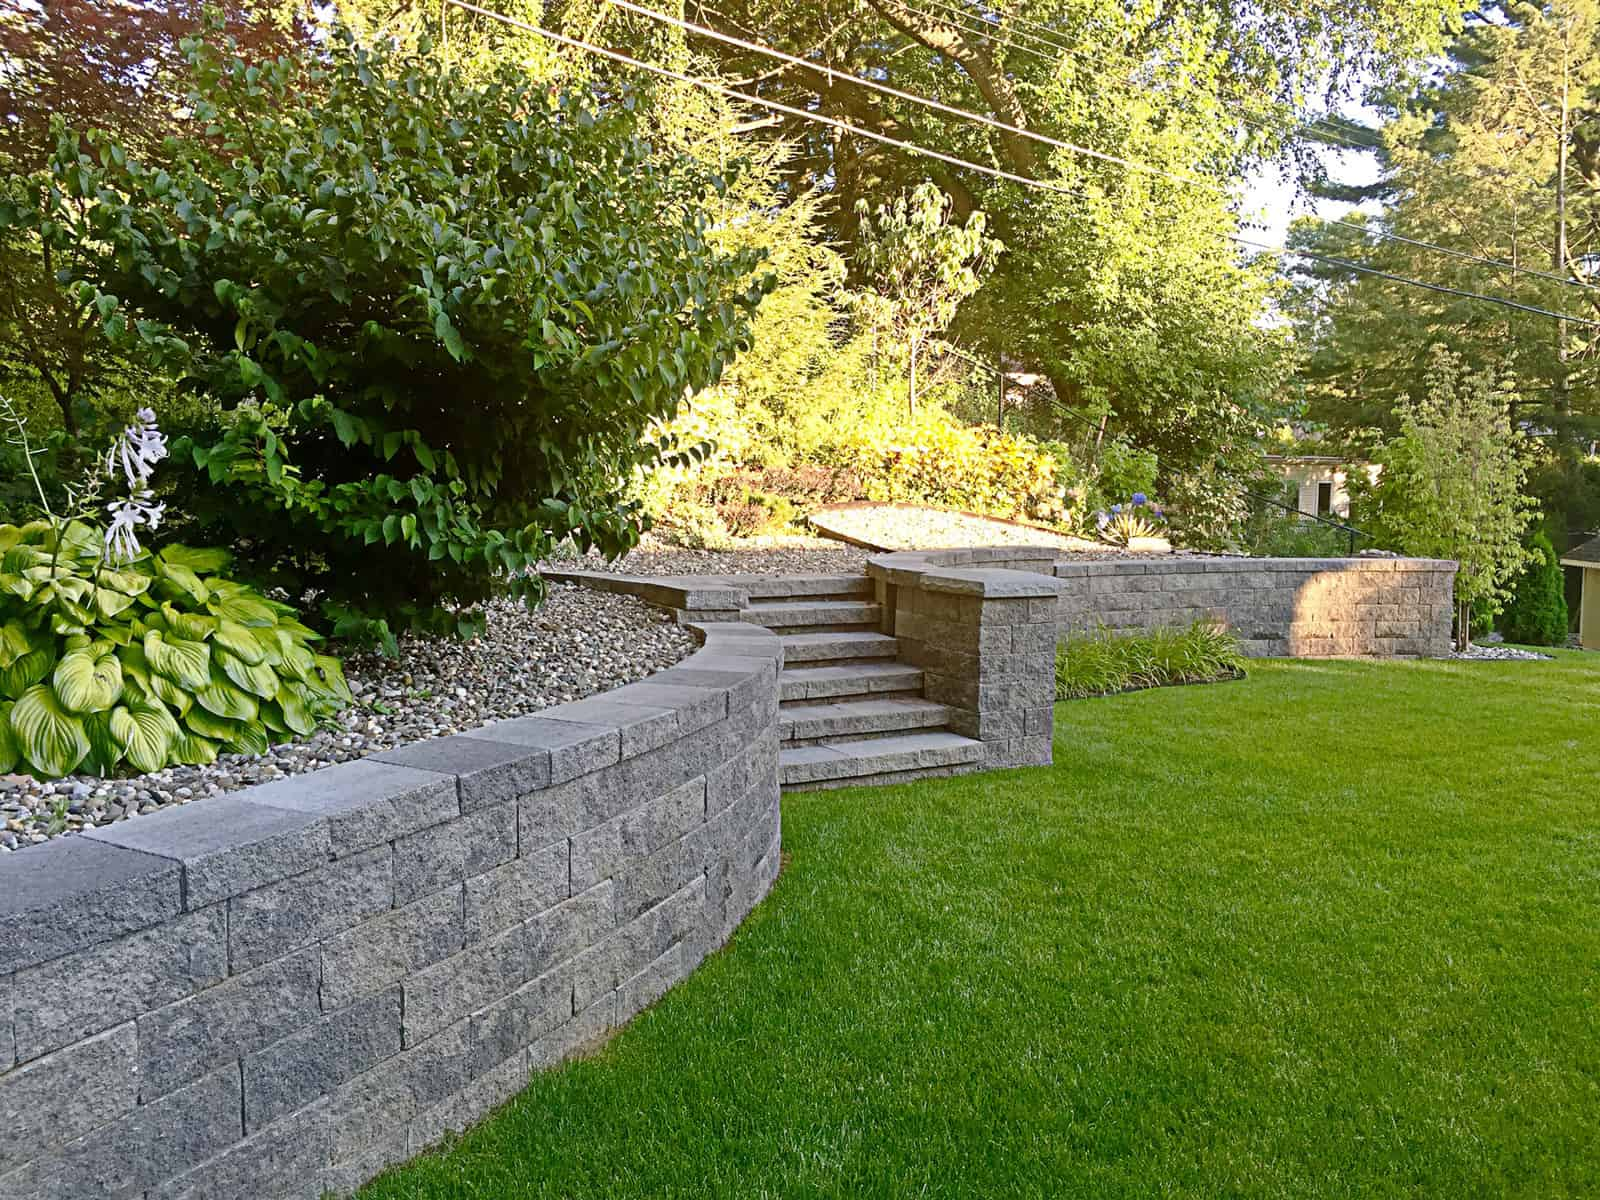 Nordic Property Services   Landscaping Contractor   Stamped Concrete   Irrigation   Commercial Snow Removal   Albany, NY   Mechanicville, NY